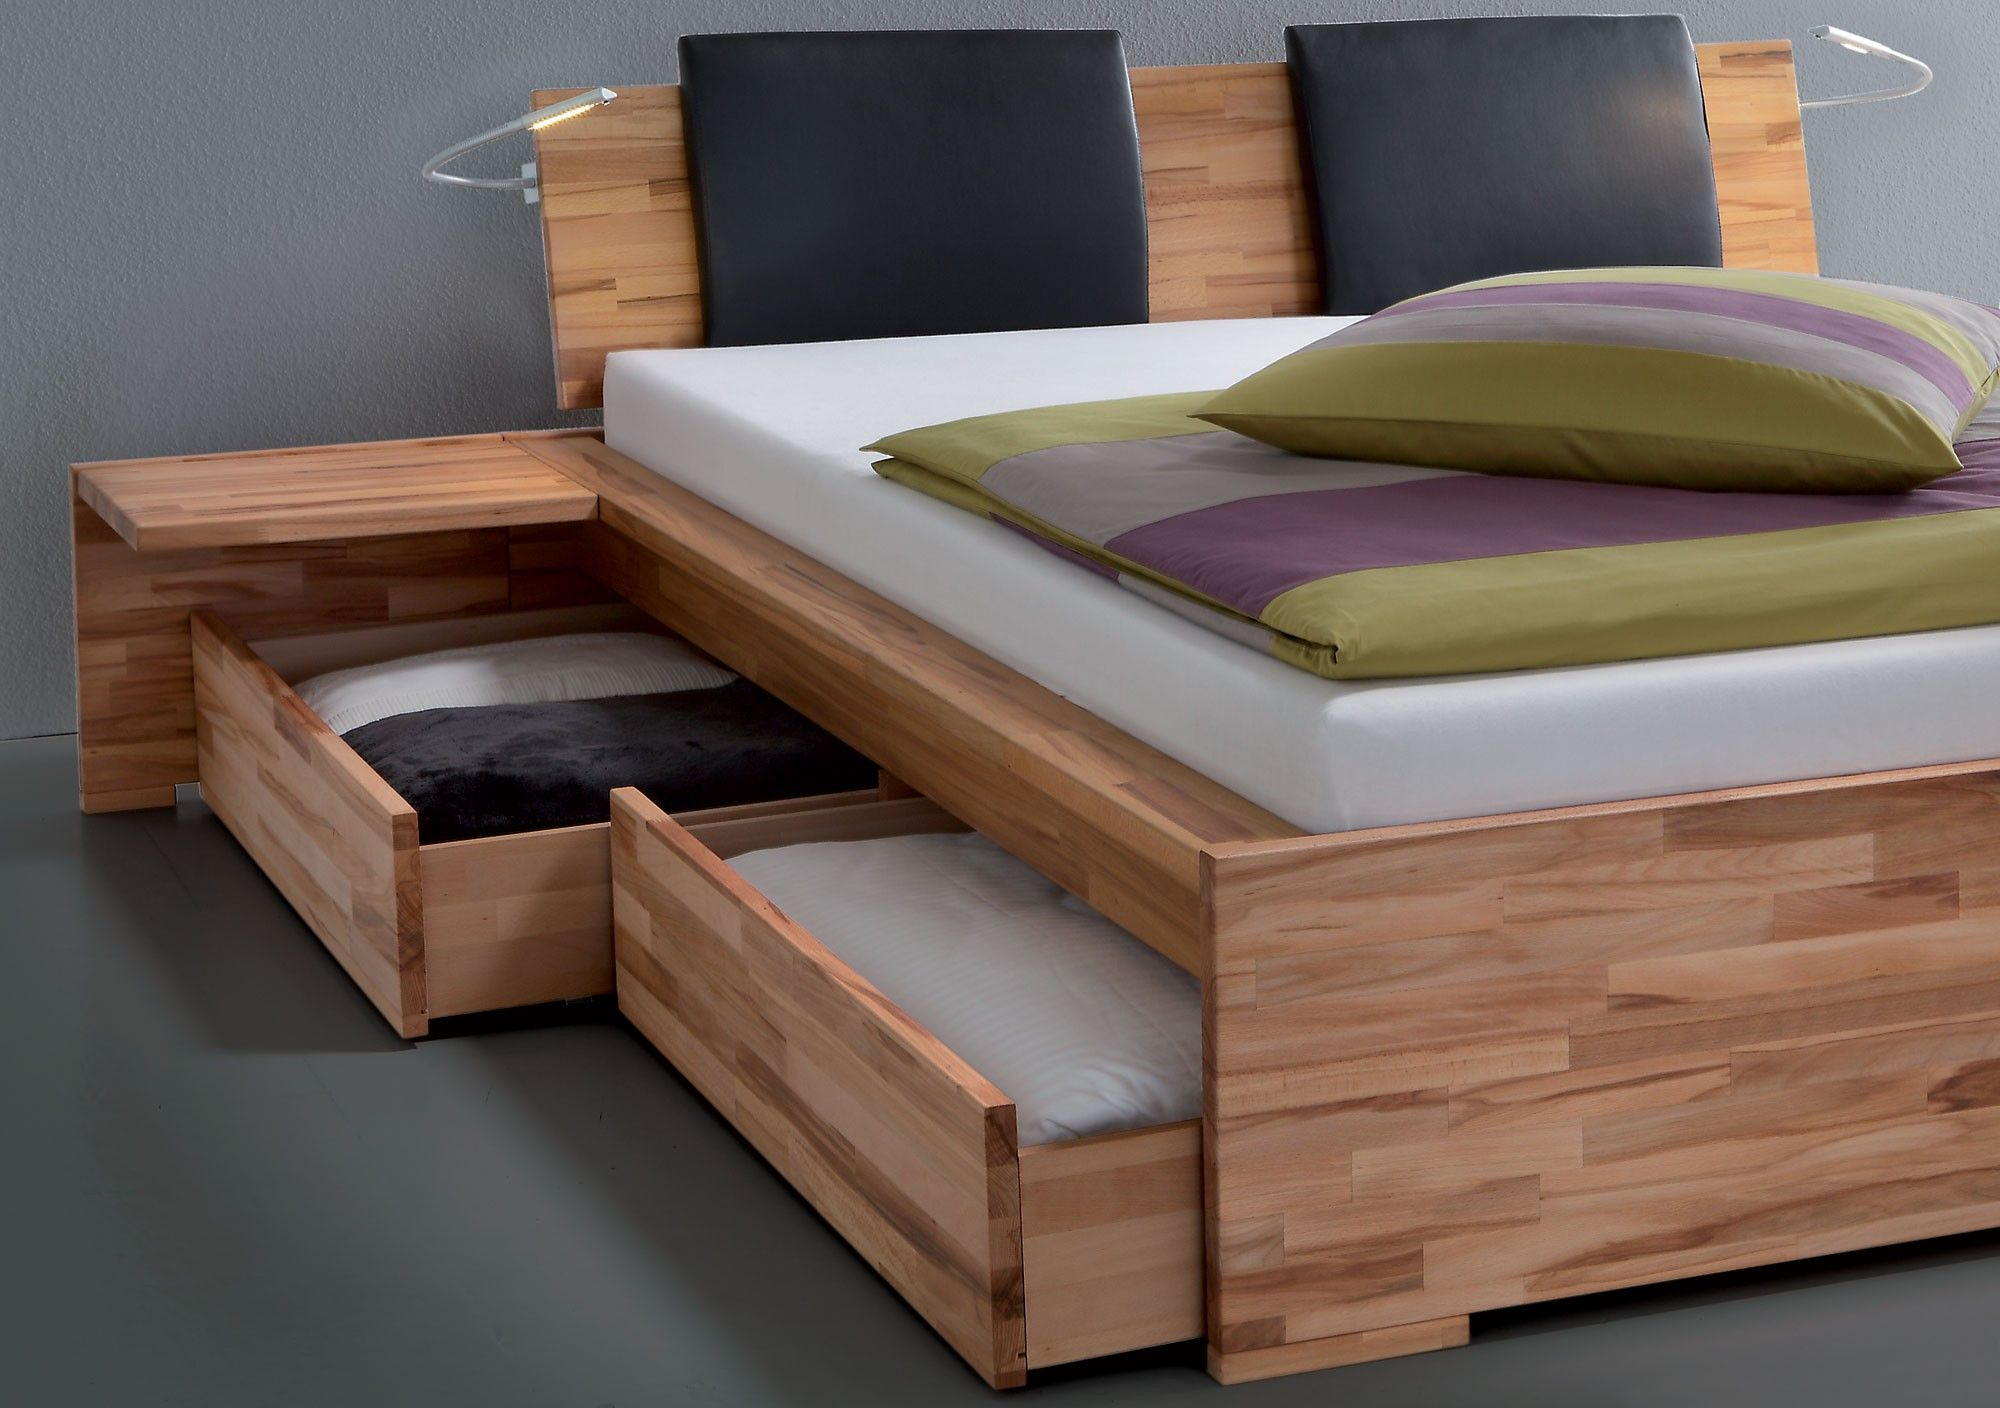 Bedroom  Wood Bed Storage Pillows Bedsheet   Storage Beds Nyc. Bedroom  Wood Bed Storage Pillows Bedsheet   Storage Beds Nyc